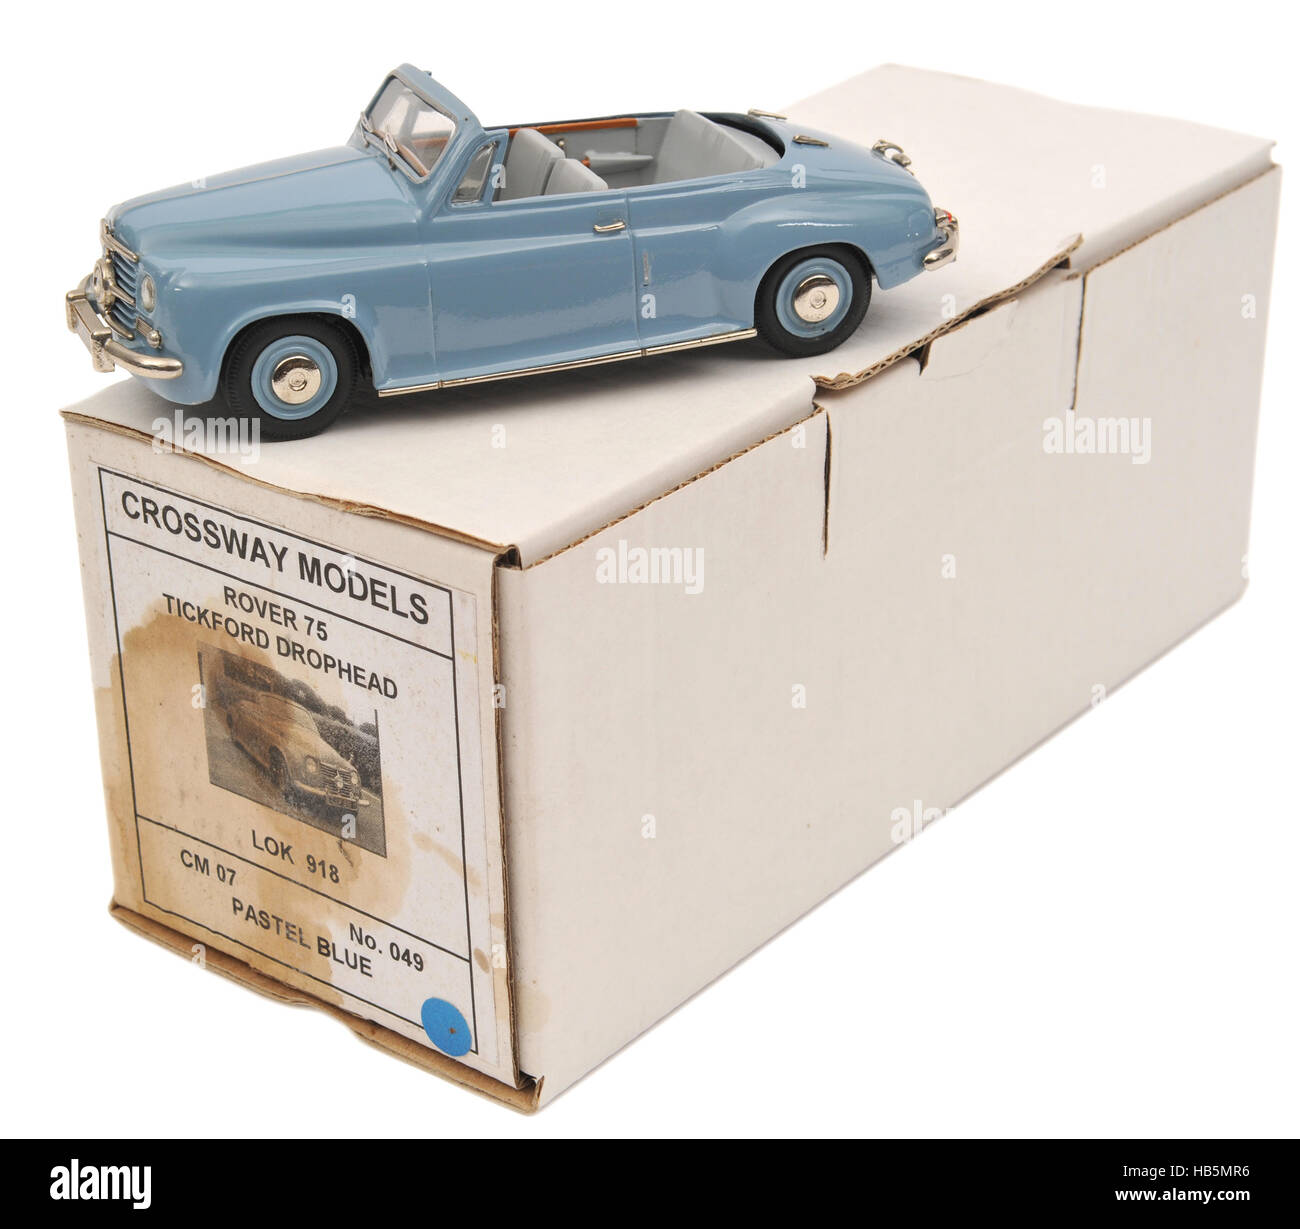 Diecast metal scale model of a 1950s Rover 75 Tickford Drophead car Stock Photo